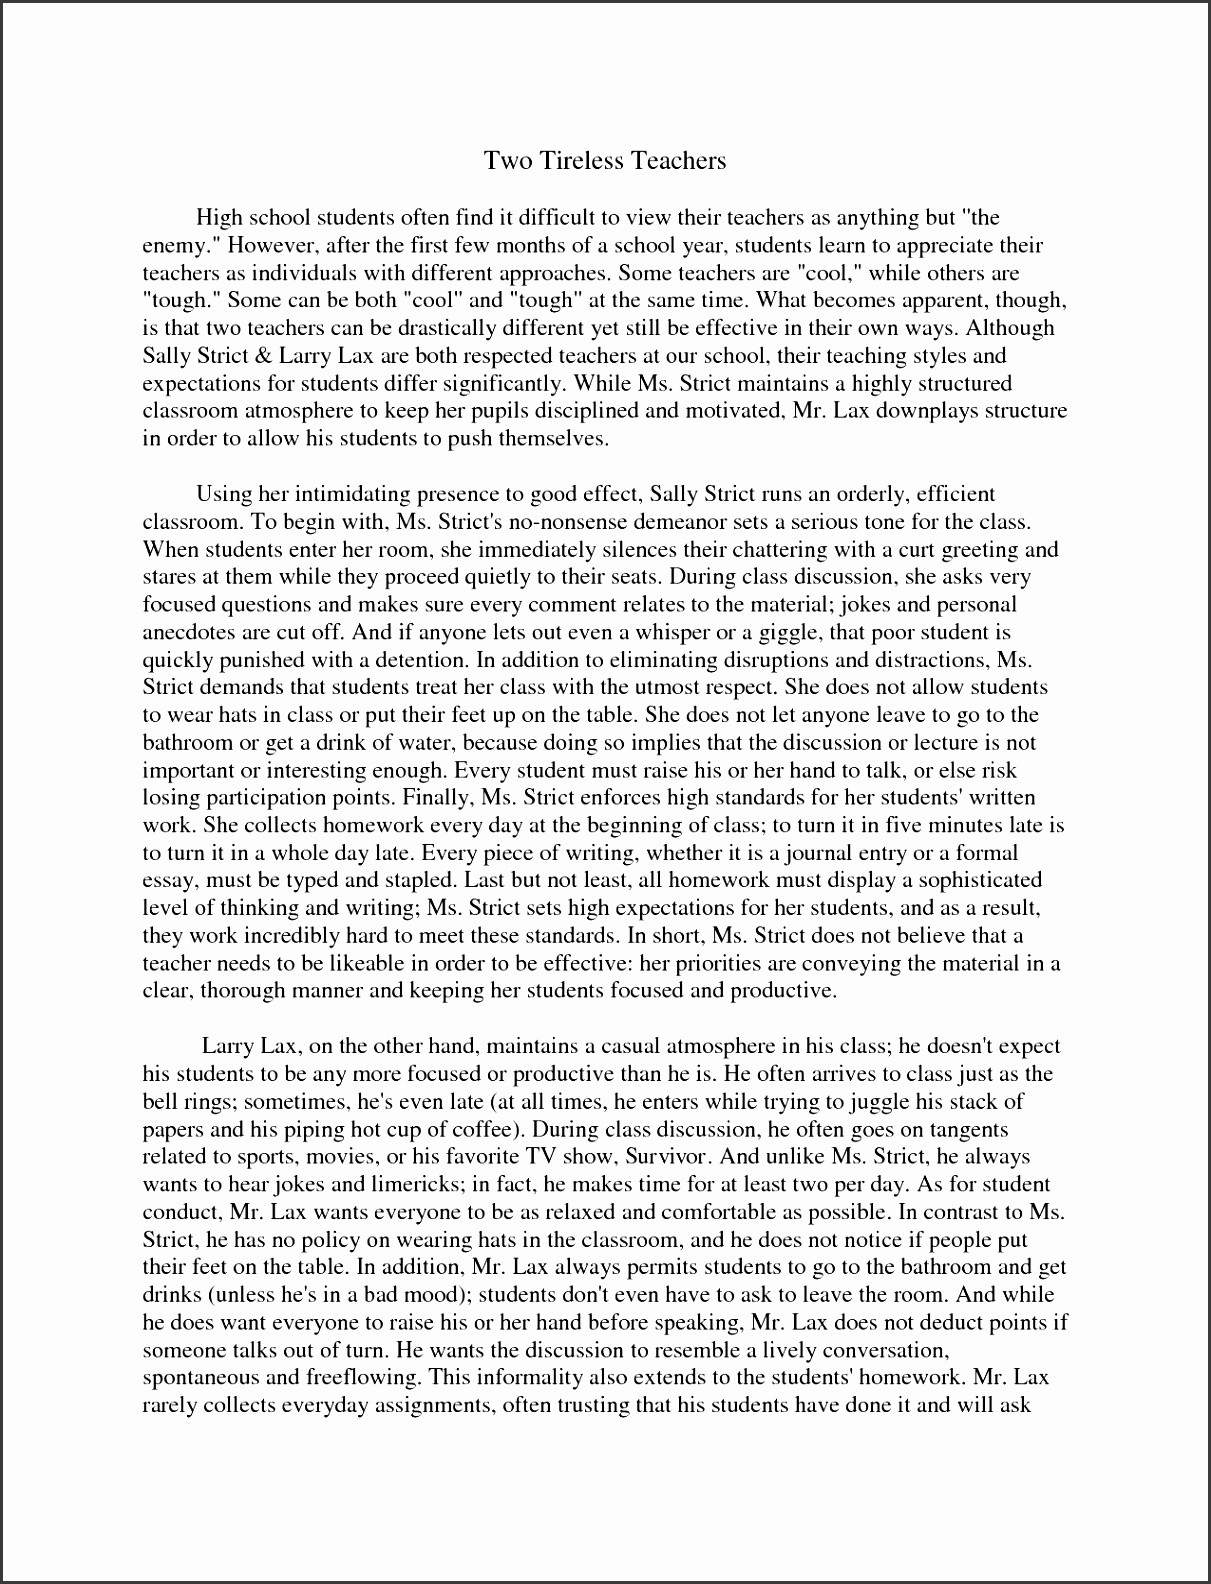 parison contrast essay samples essay graphic organizer pare contrast paper analytical essay breakdown pare and contrast essay papers business